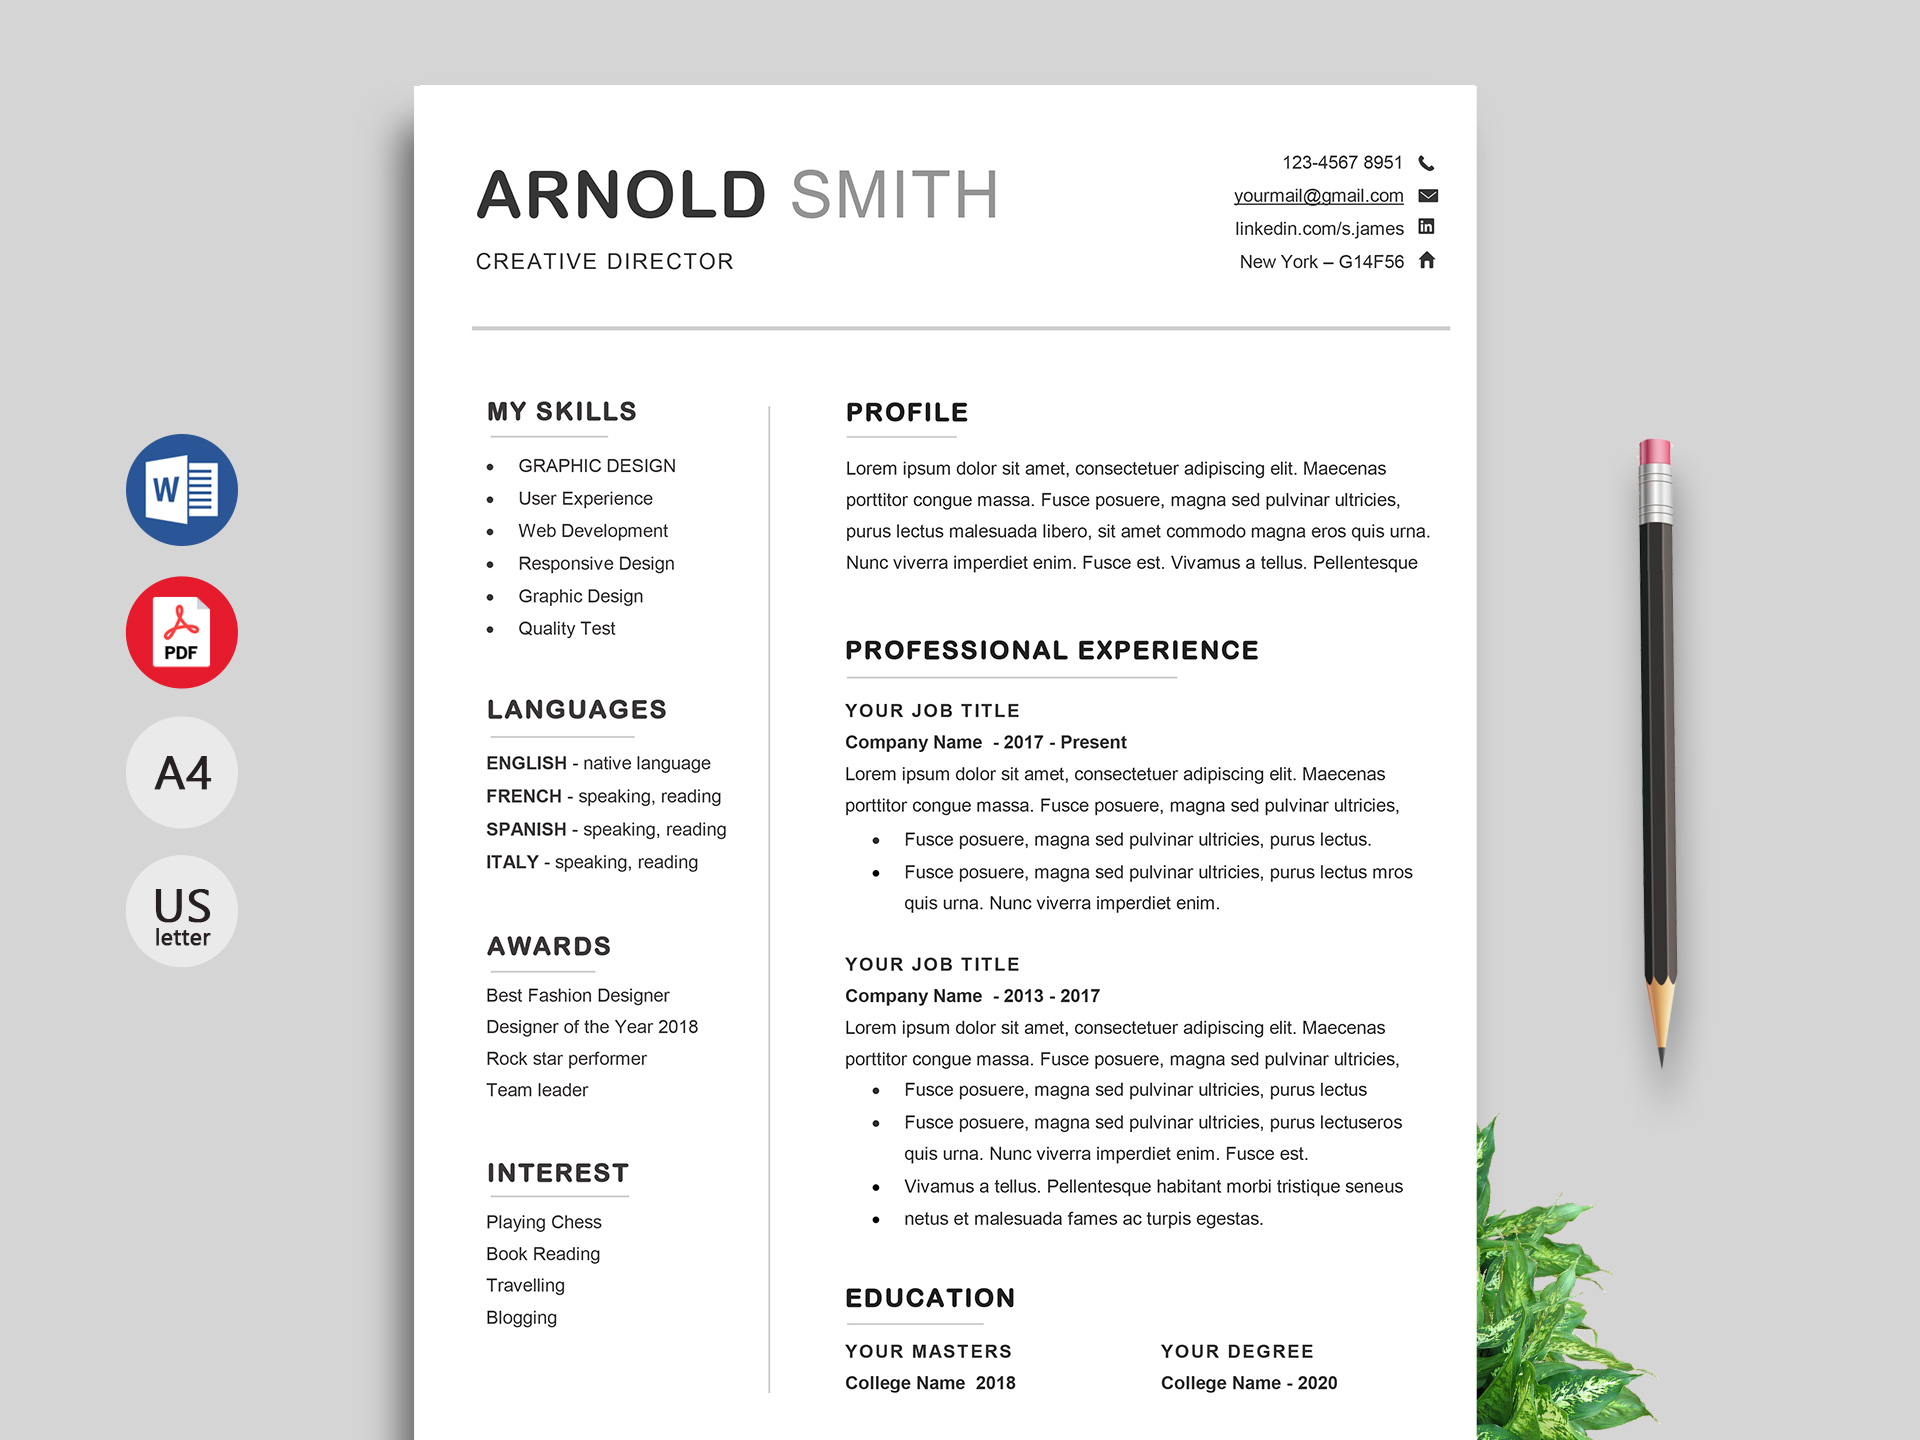 free resume cv templates in word format resumekraft template dental hygienist business Resume Word Resume Template 2020